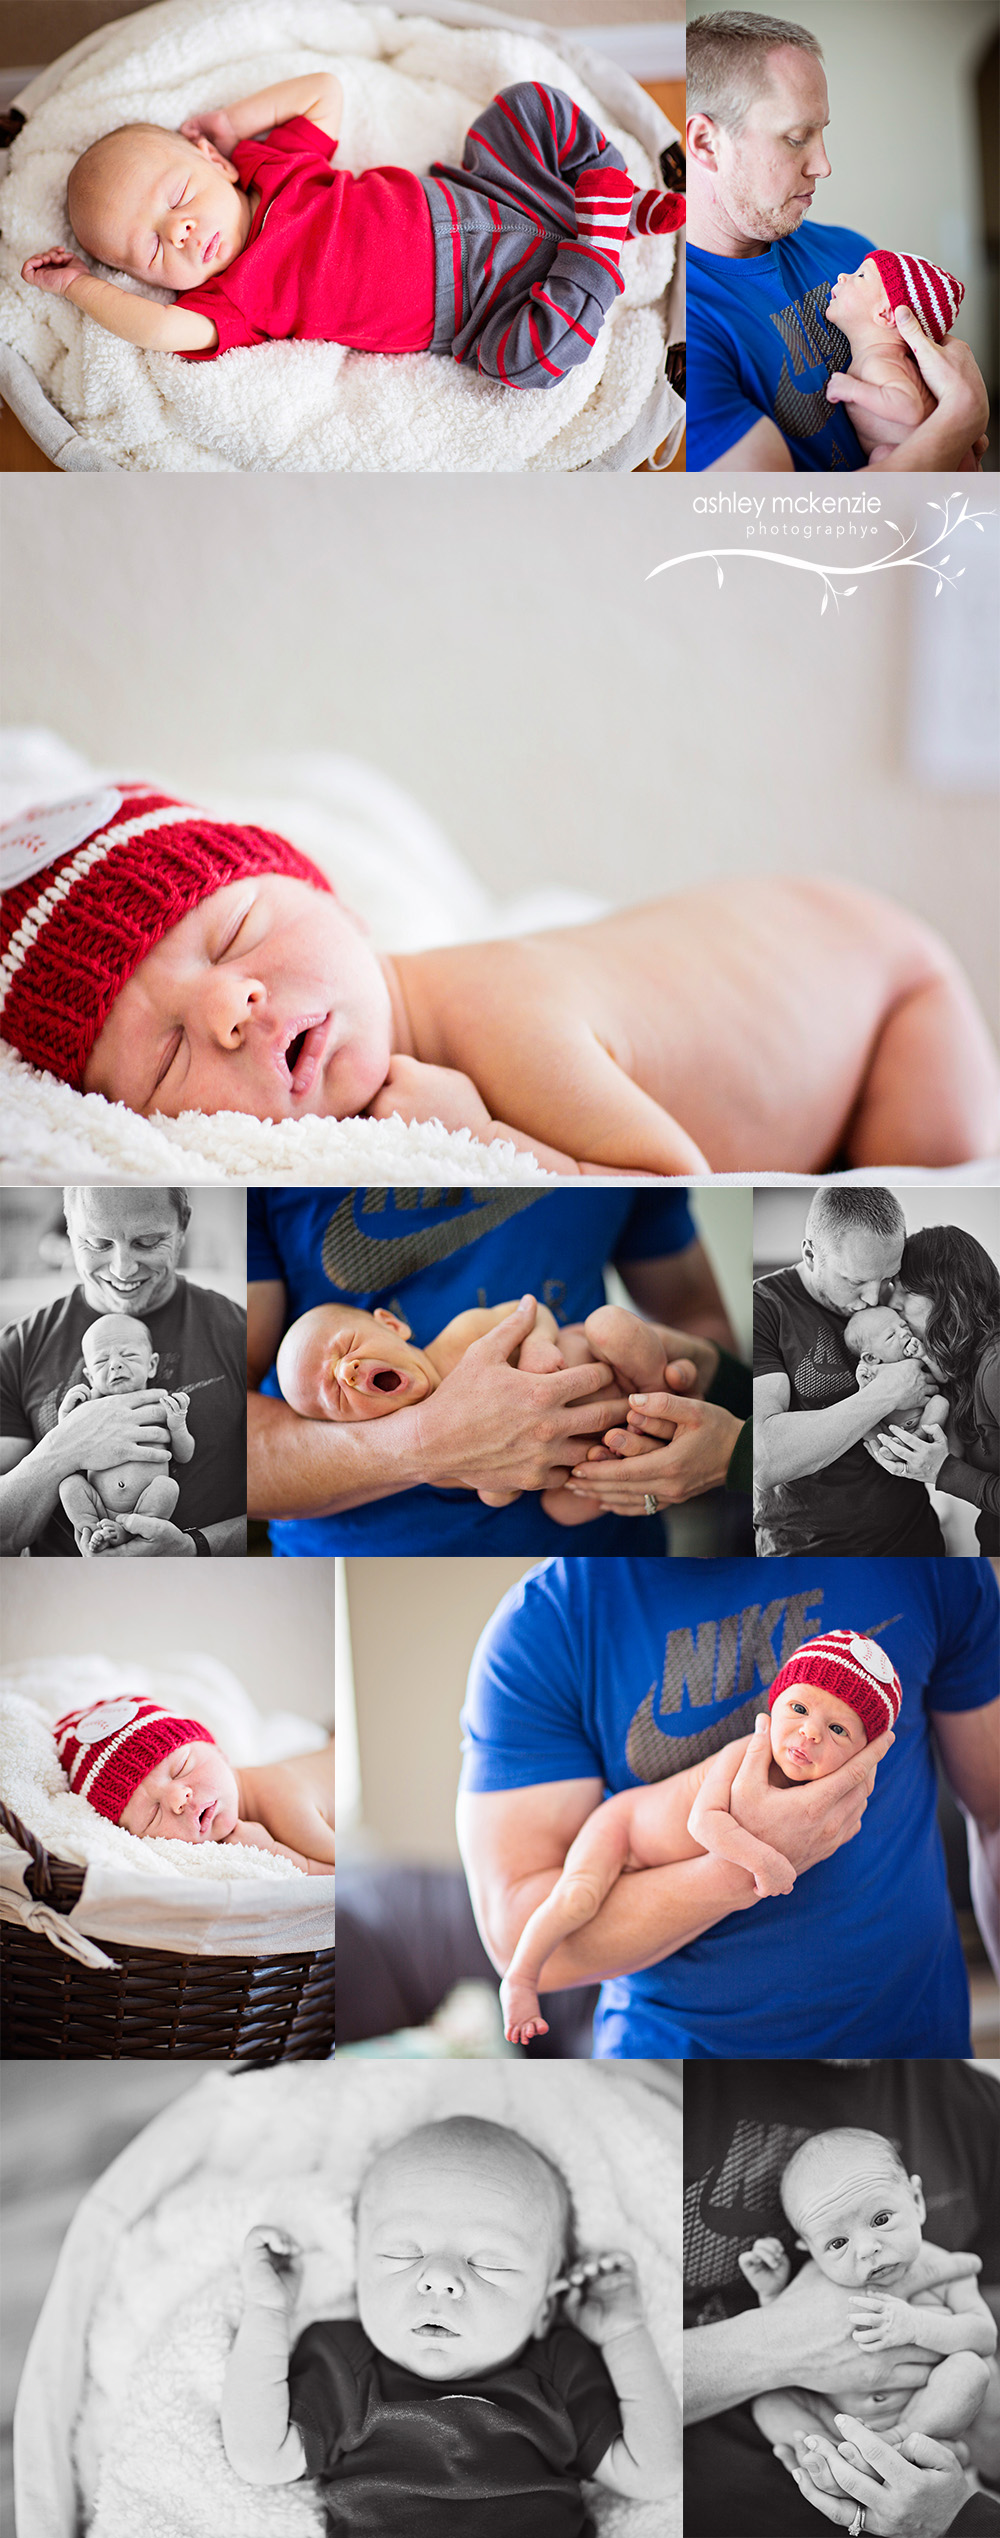 Lifestyle Newborn Photography by Ashley McKenzie Photography in Greeley, CO